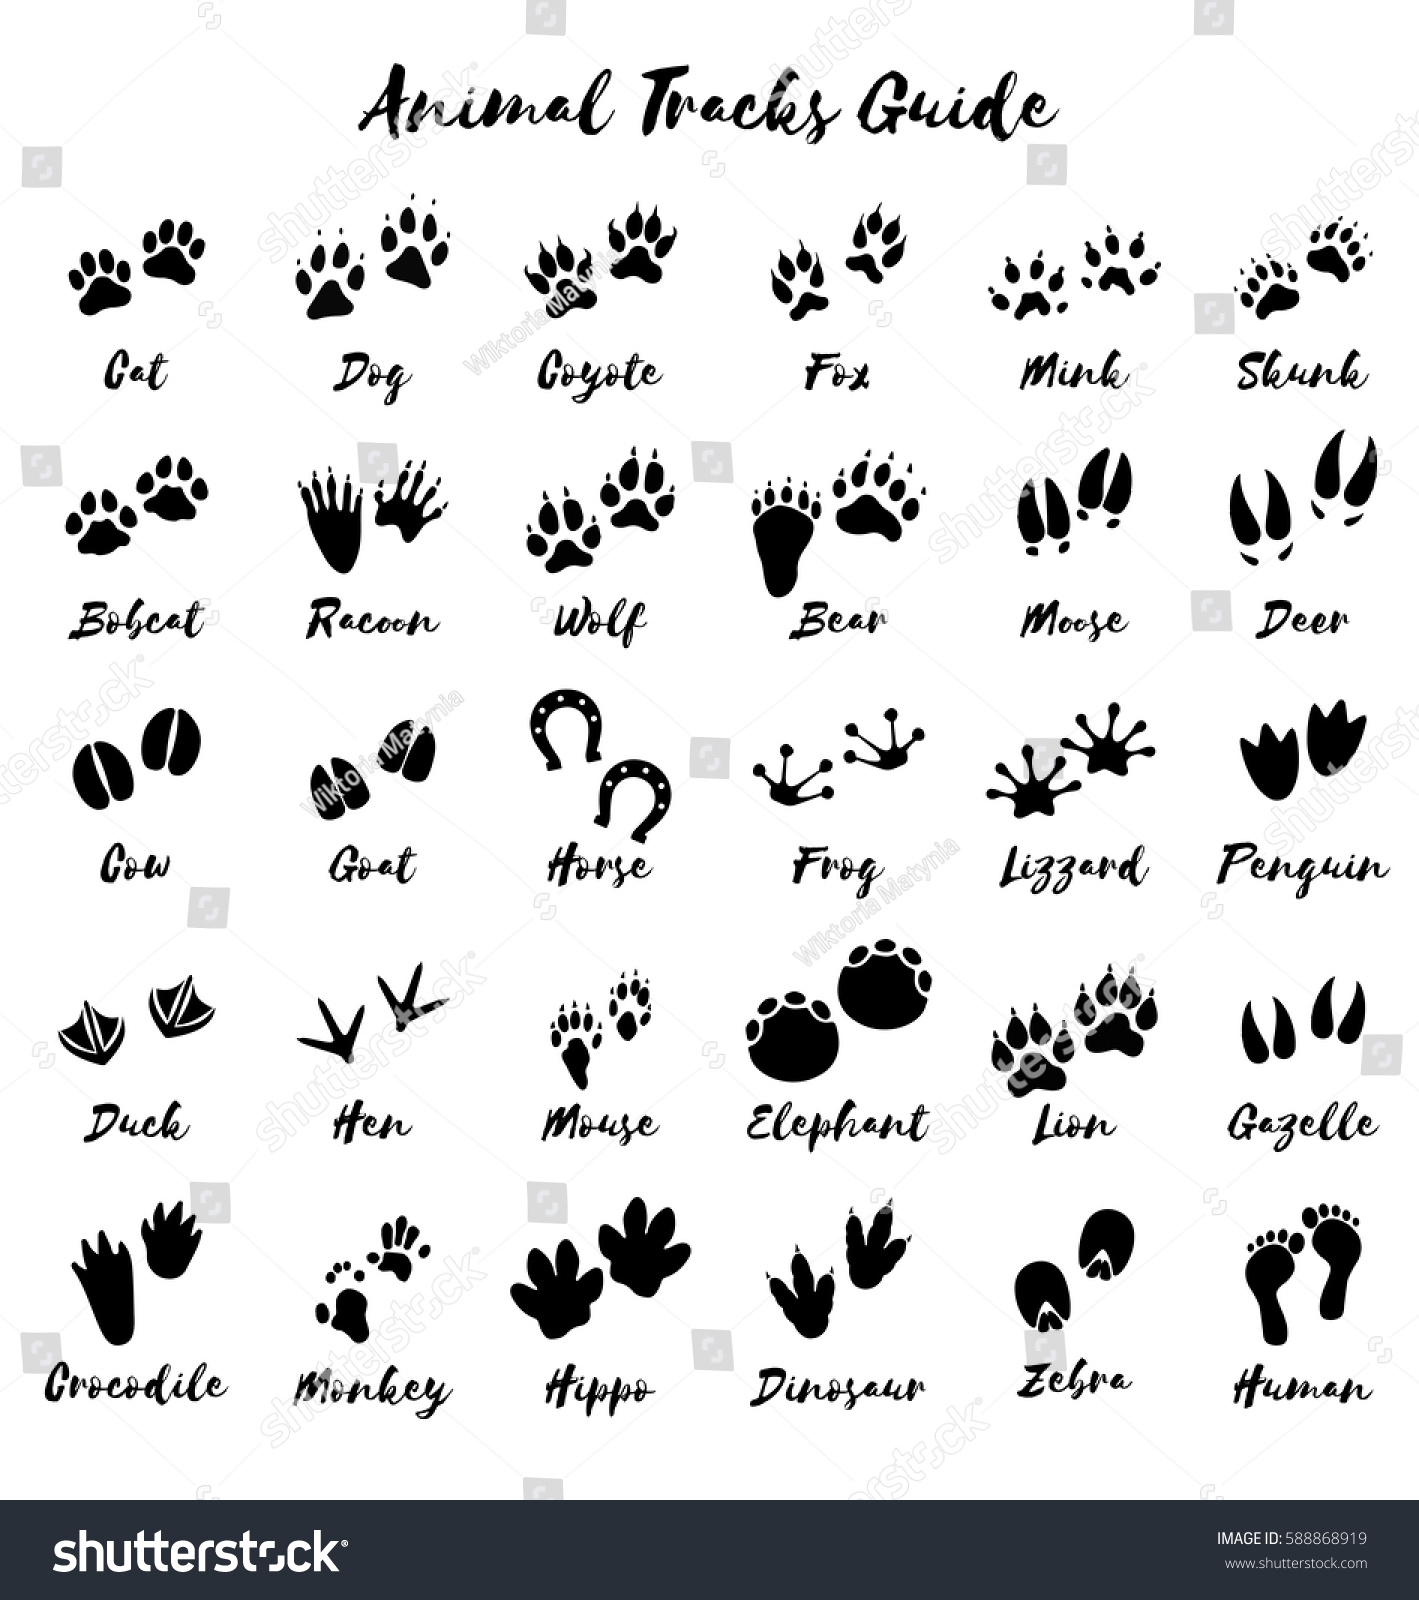 Animal Tracks Foot Print Guide Vector Stock Vector